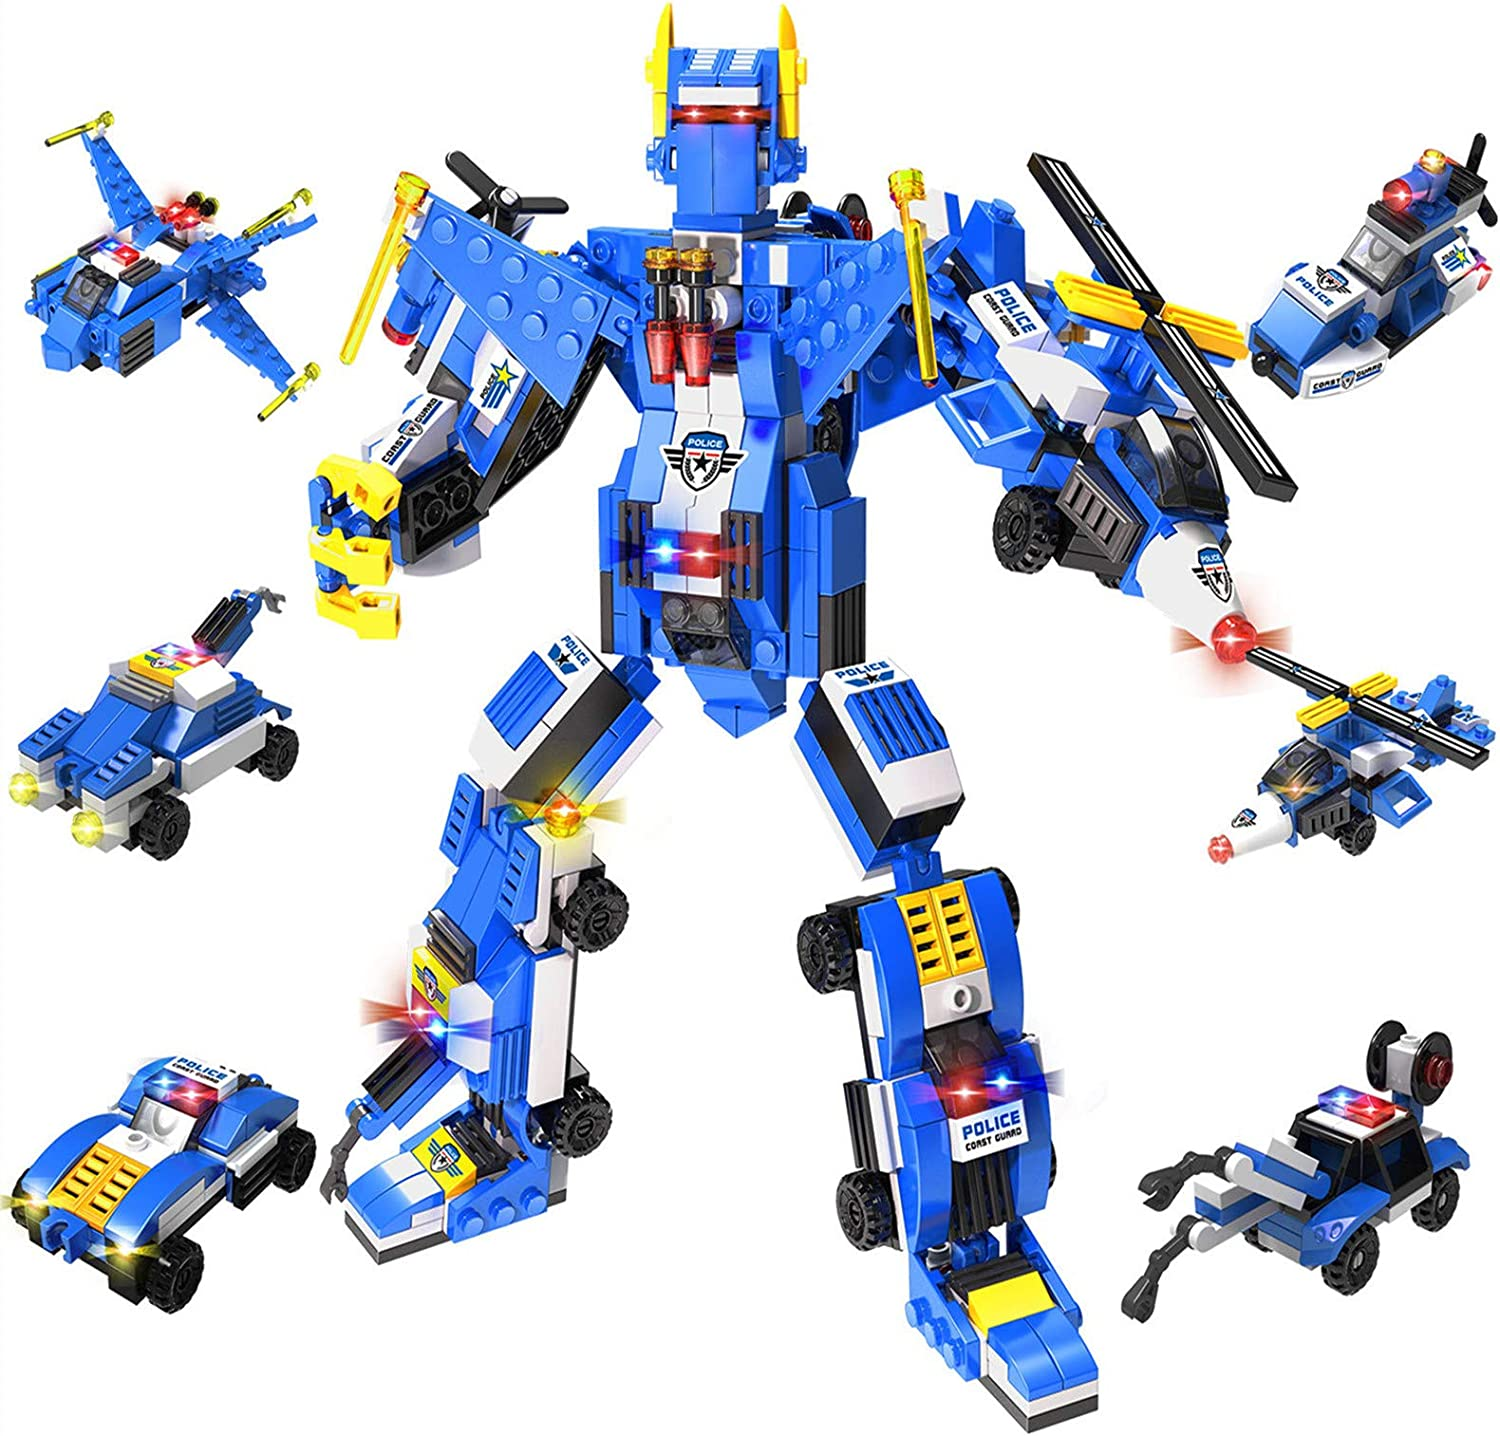 ANGINSTAR Building Blocks Building Bricks Toy for Kids Robot STEM Toy Transforming Construction Building Toys Engineering 6 in 1 Change 22 Style Fun Stem Toys for Boys and Girls Ages 6 Years Old